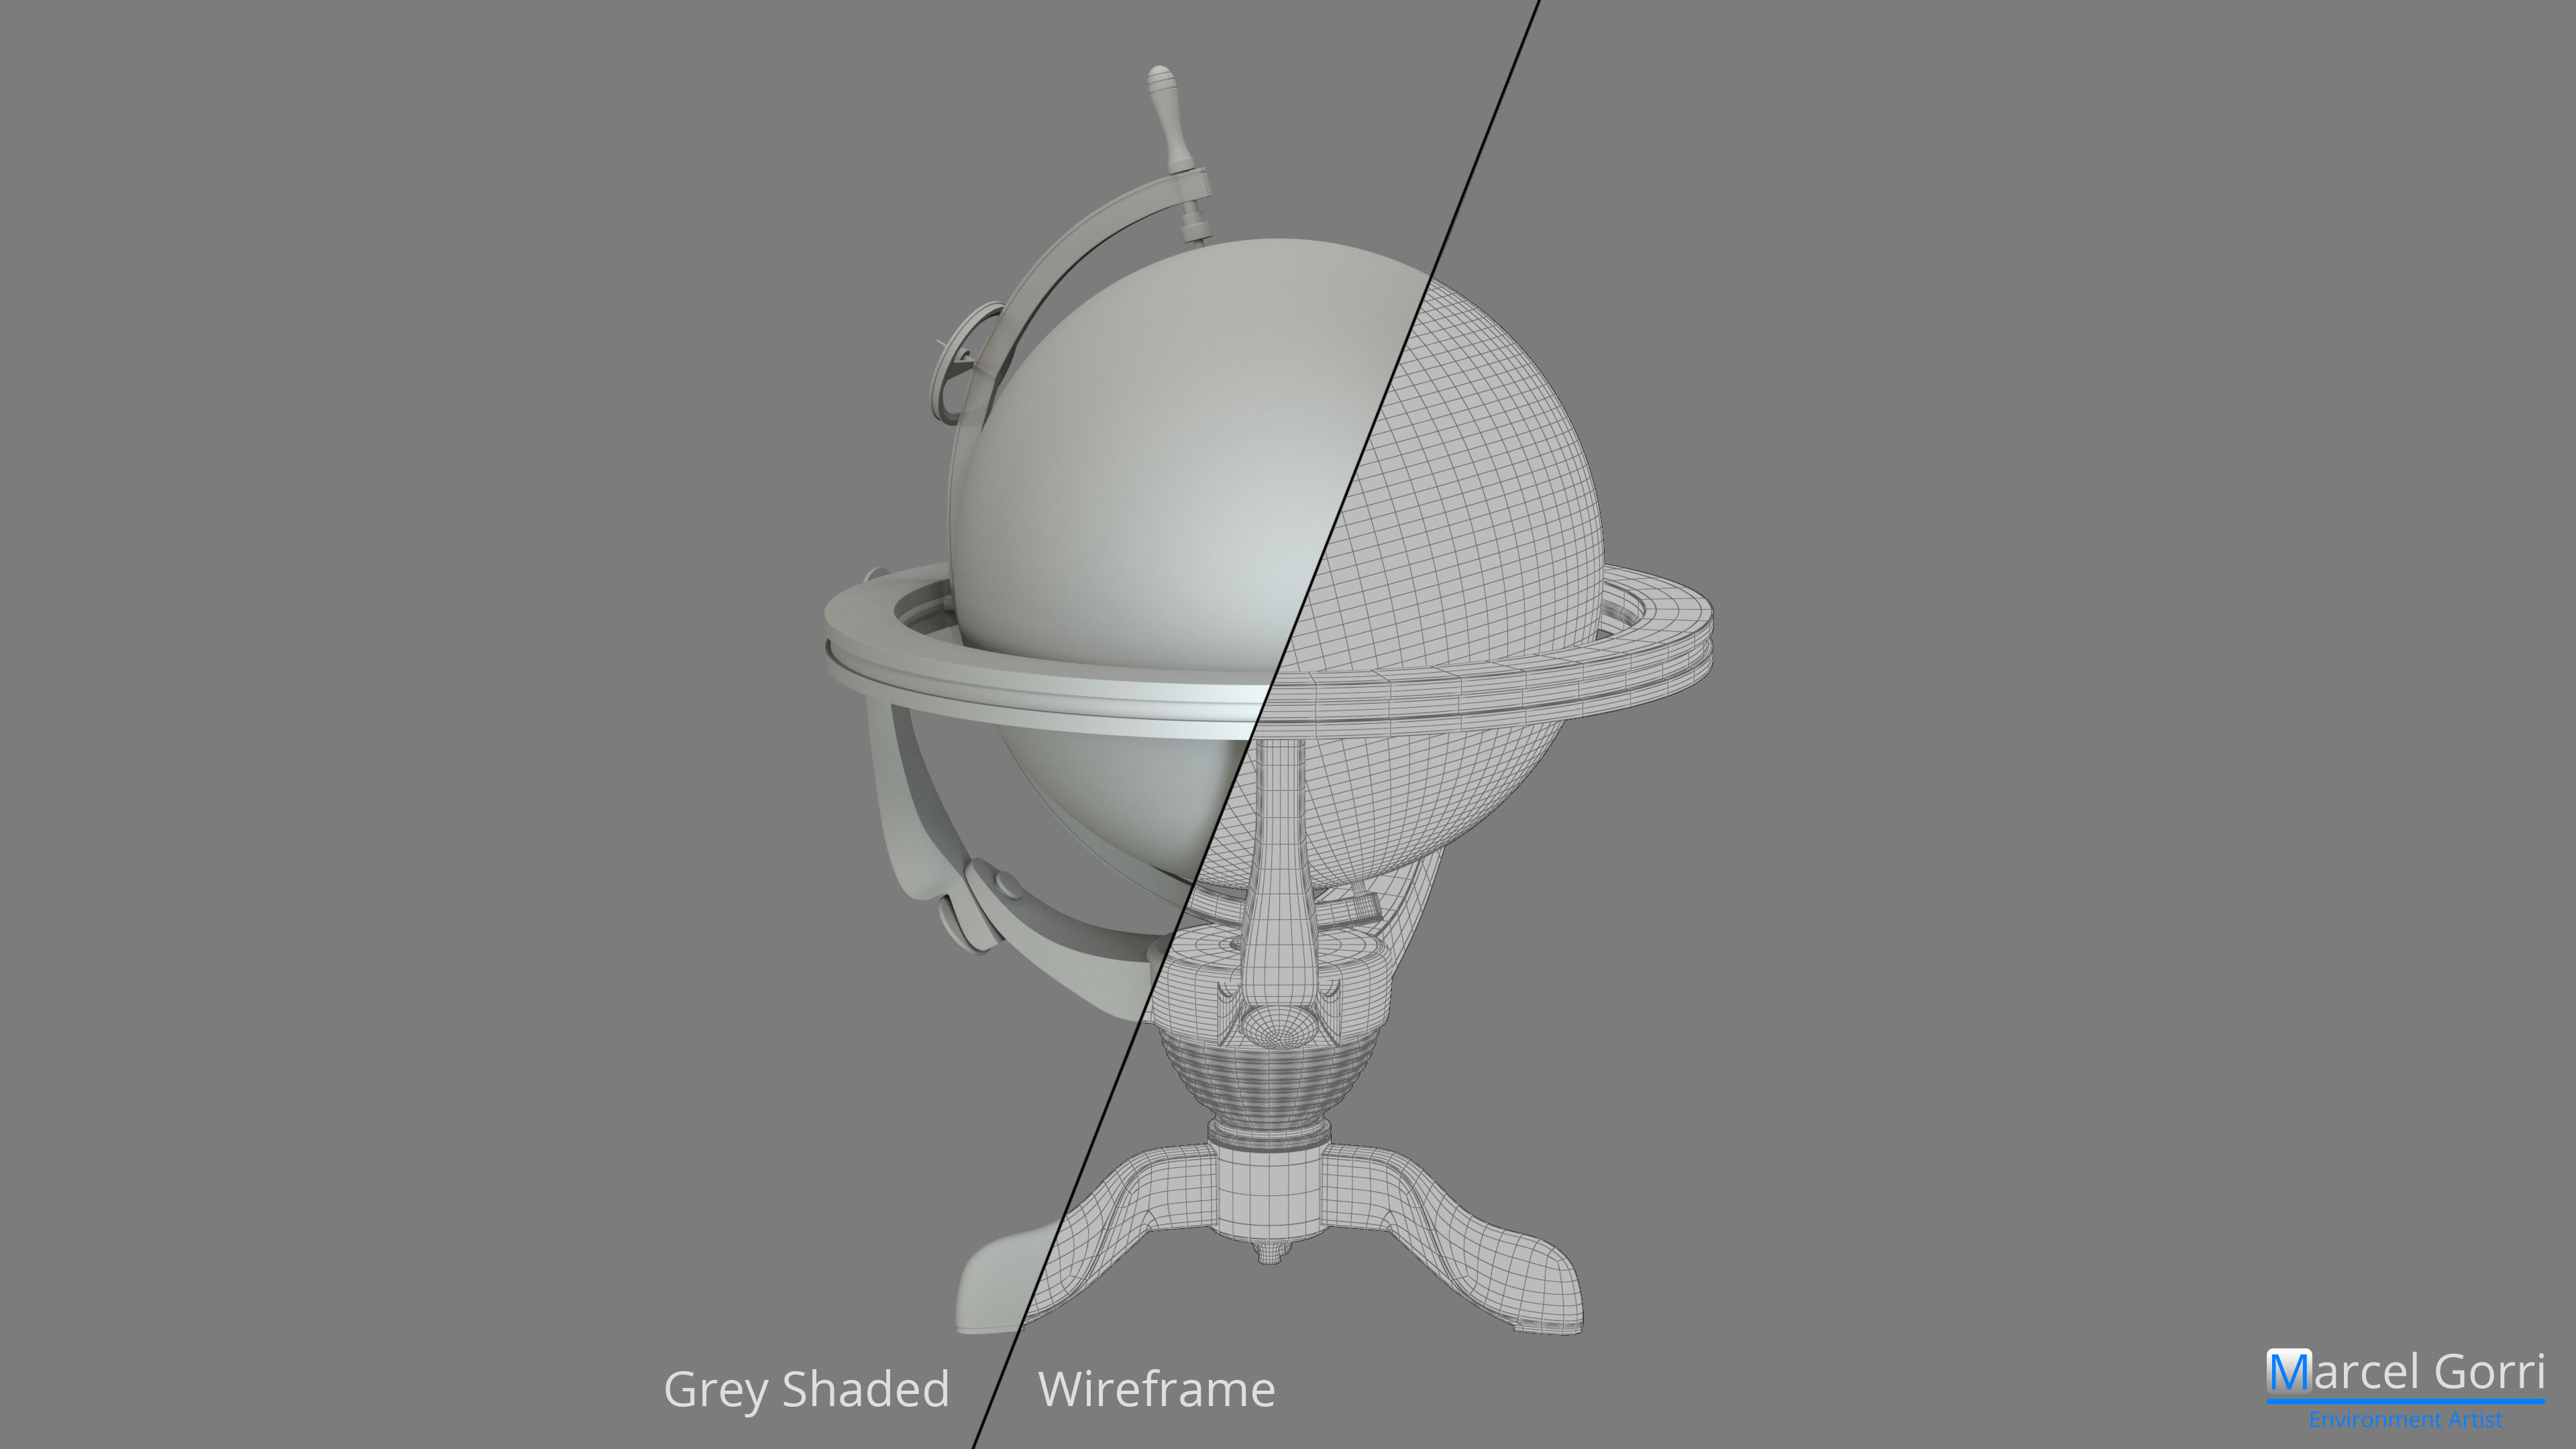 World Globe - Breakdown: Grey Shaded / Wireframe